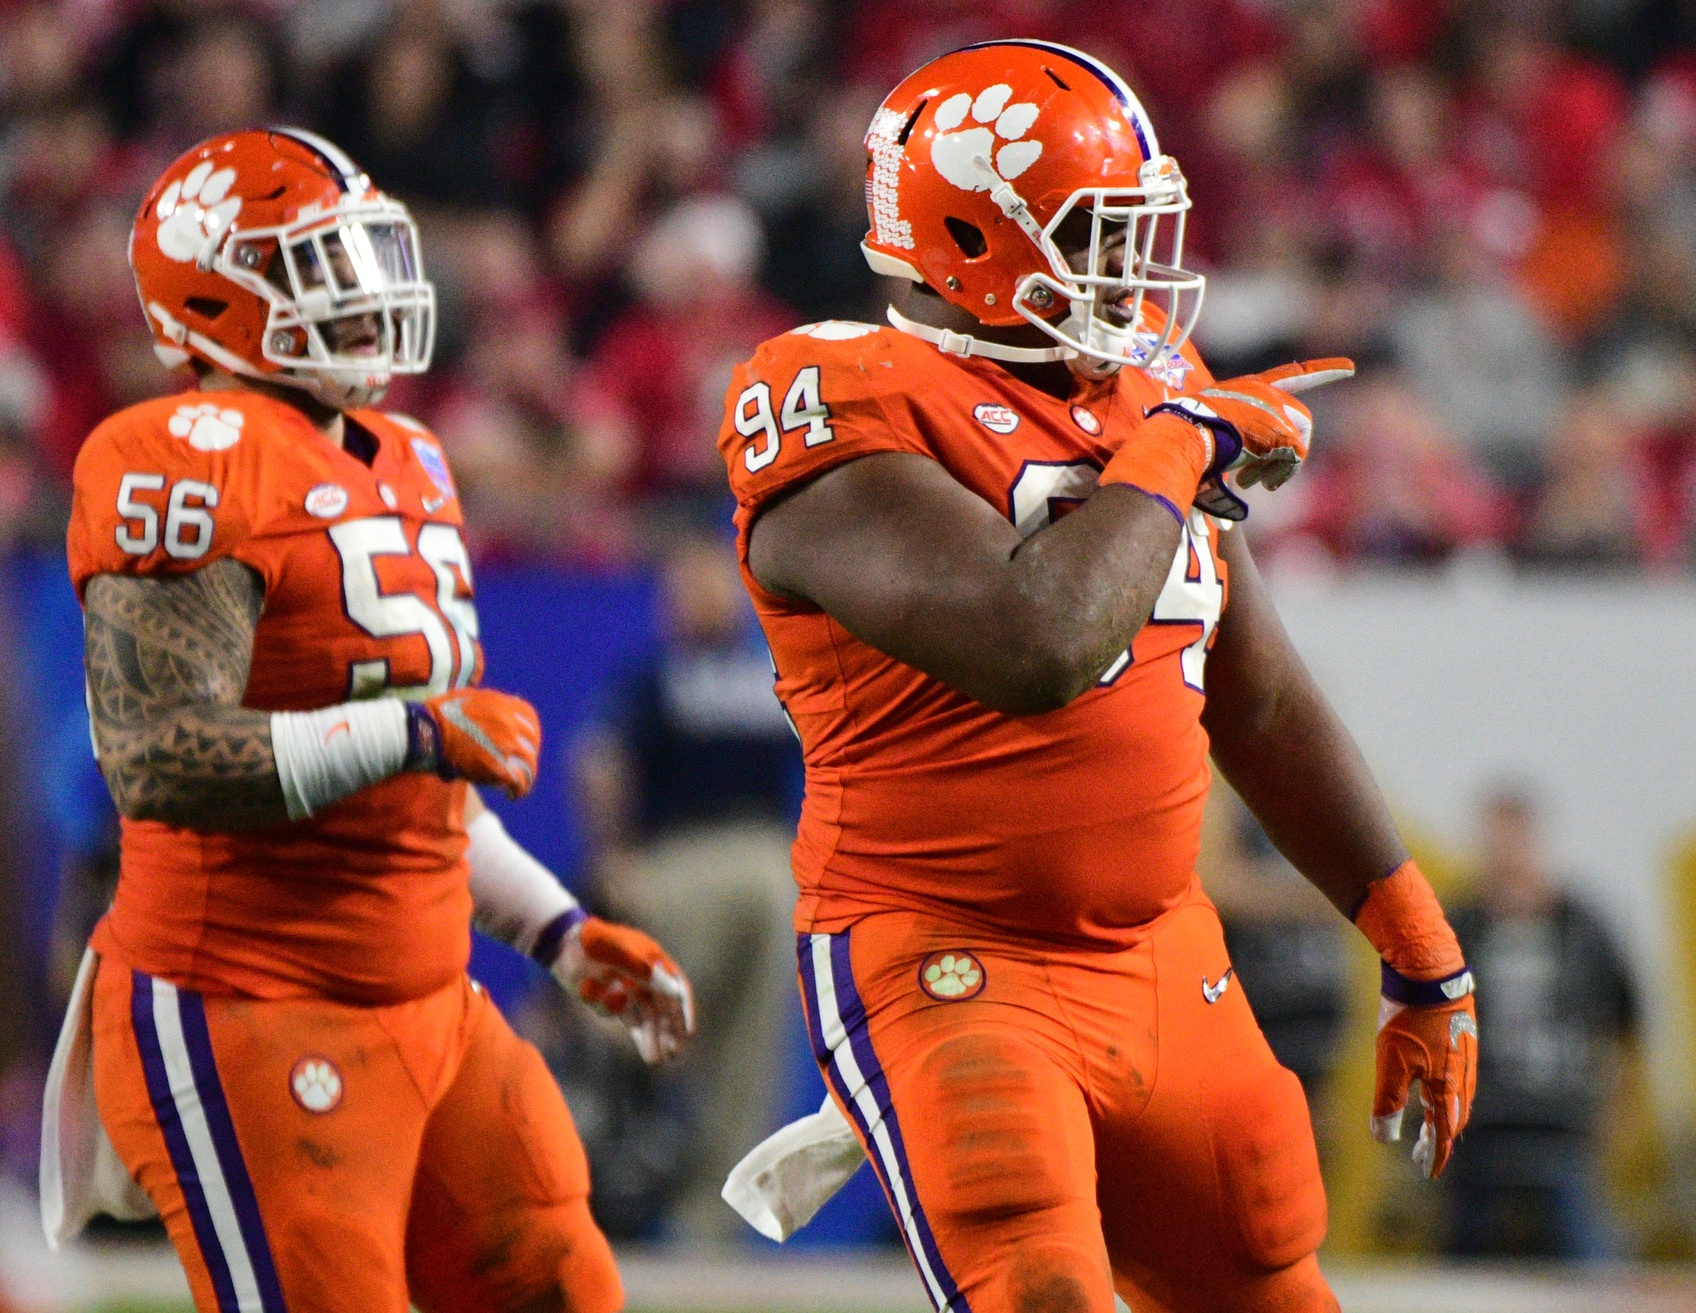 Dec 31, 2016; Glendale, AZ, USA; Clemson Tigers defensive tackle Carlos Watkins (94) reacts during the fourth quarter in the 2016 CFP semifinal against the Ohio State Buckeyes at University of Phoenix Stadium. Mandatory Credit: Matt Kartozian-USA TODAY Sports